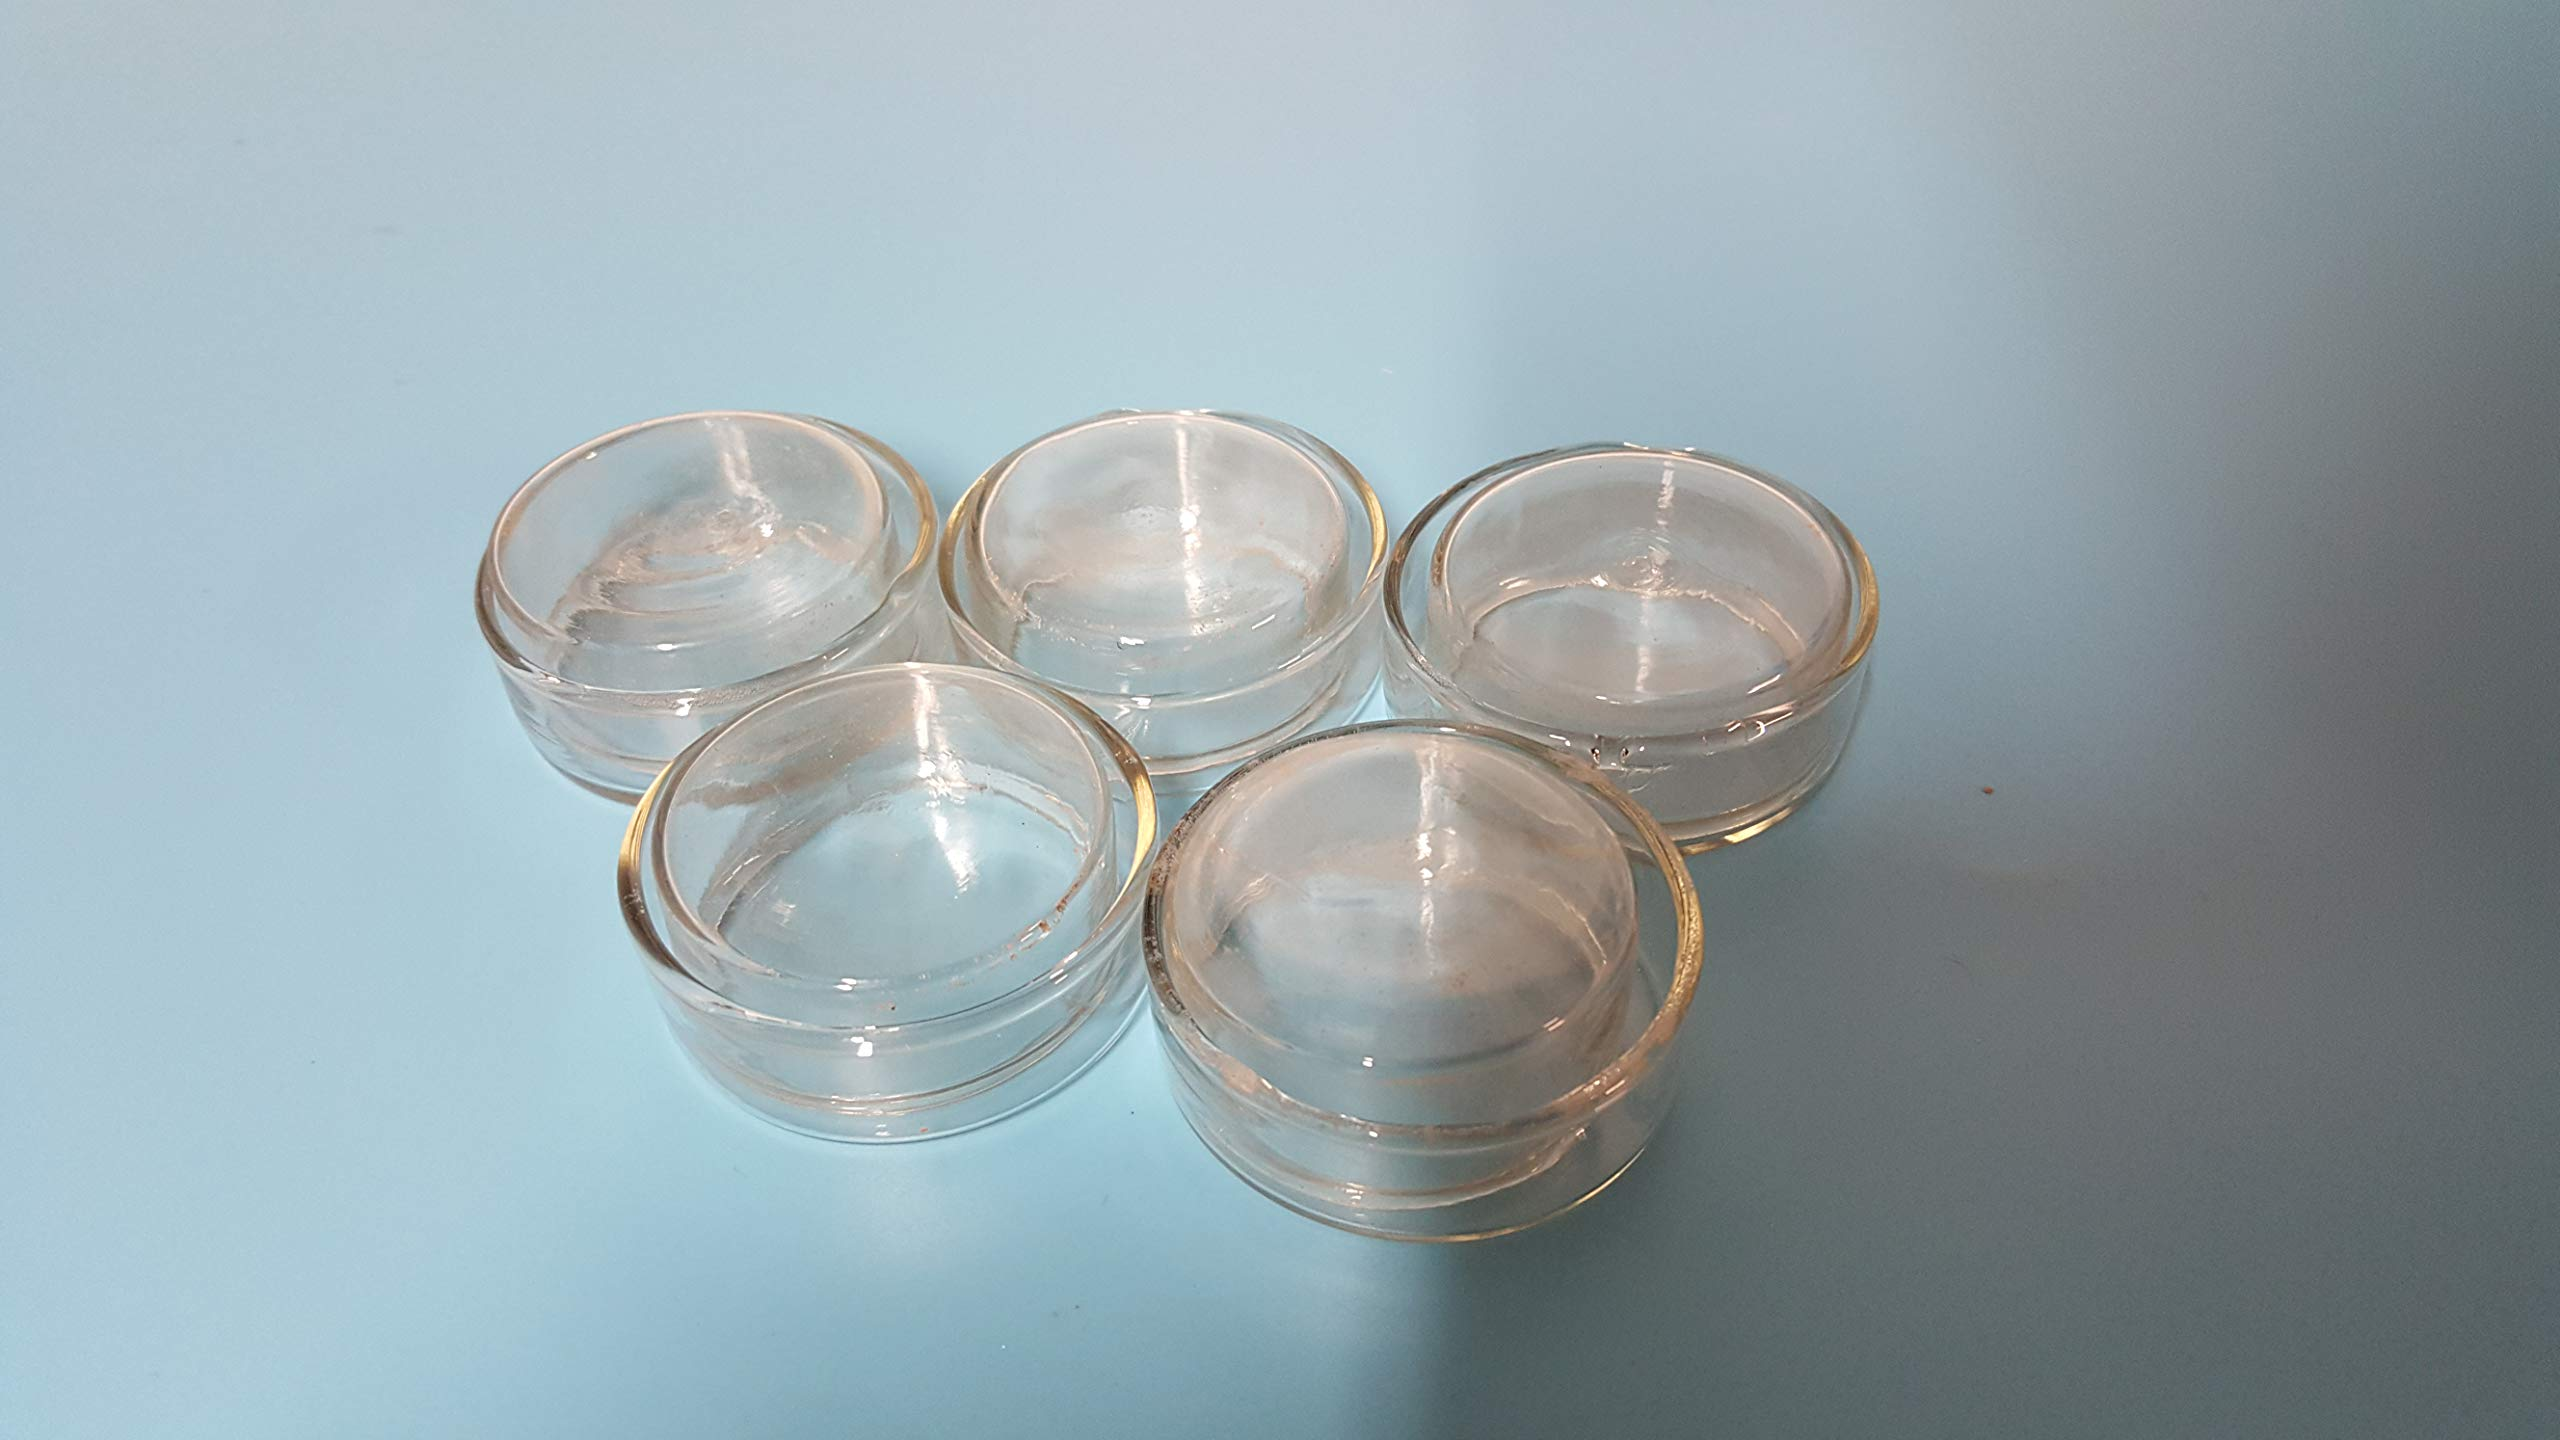 Beyondsupply-lab Glass Petri Dish Clear Borosillicate 35mm Pack of 5 by beyondsupply